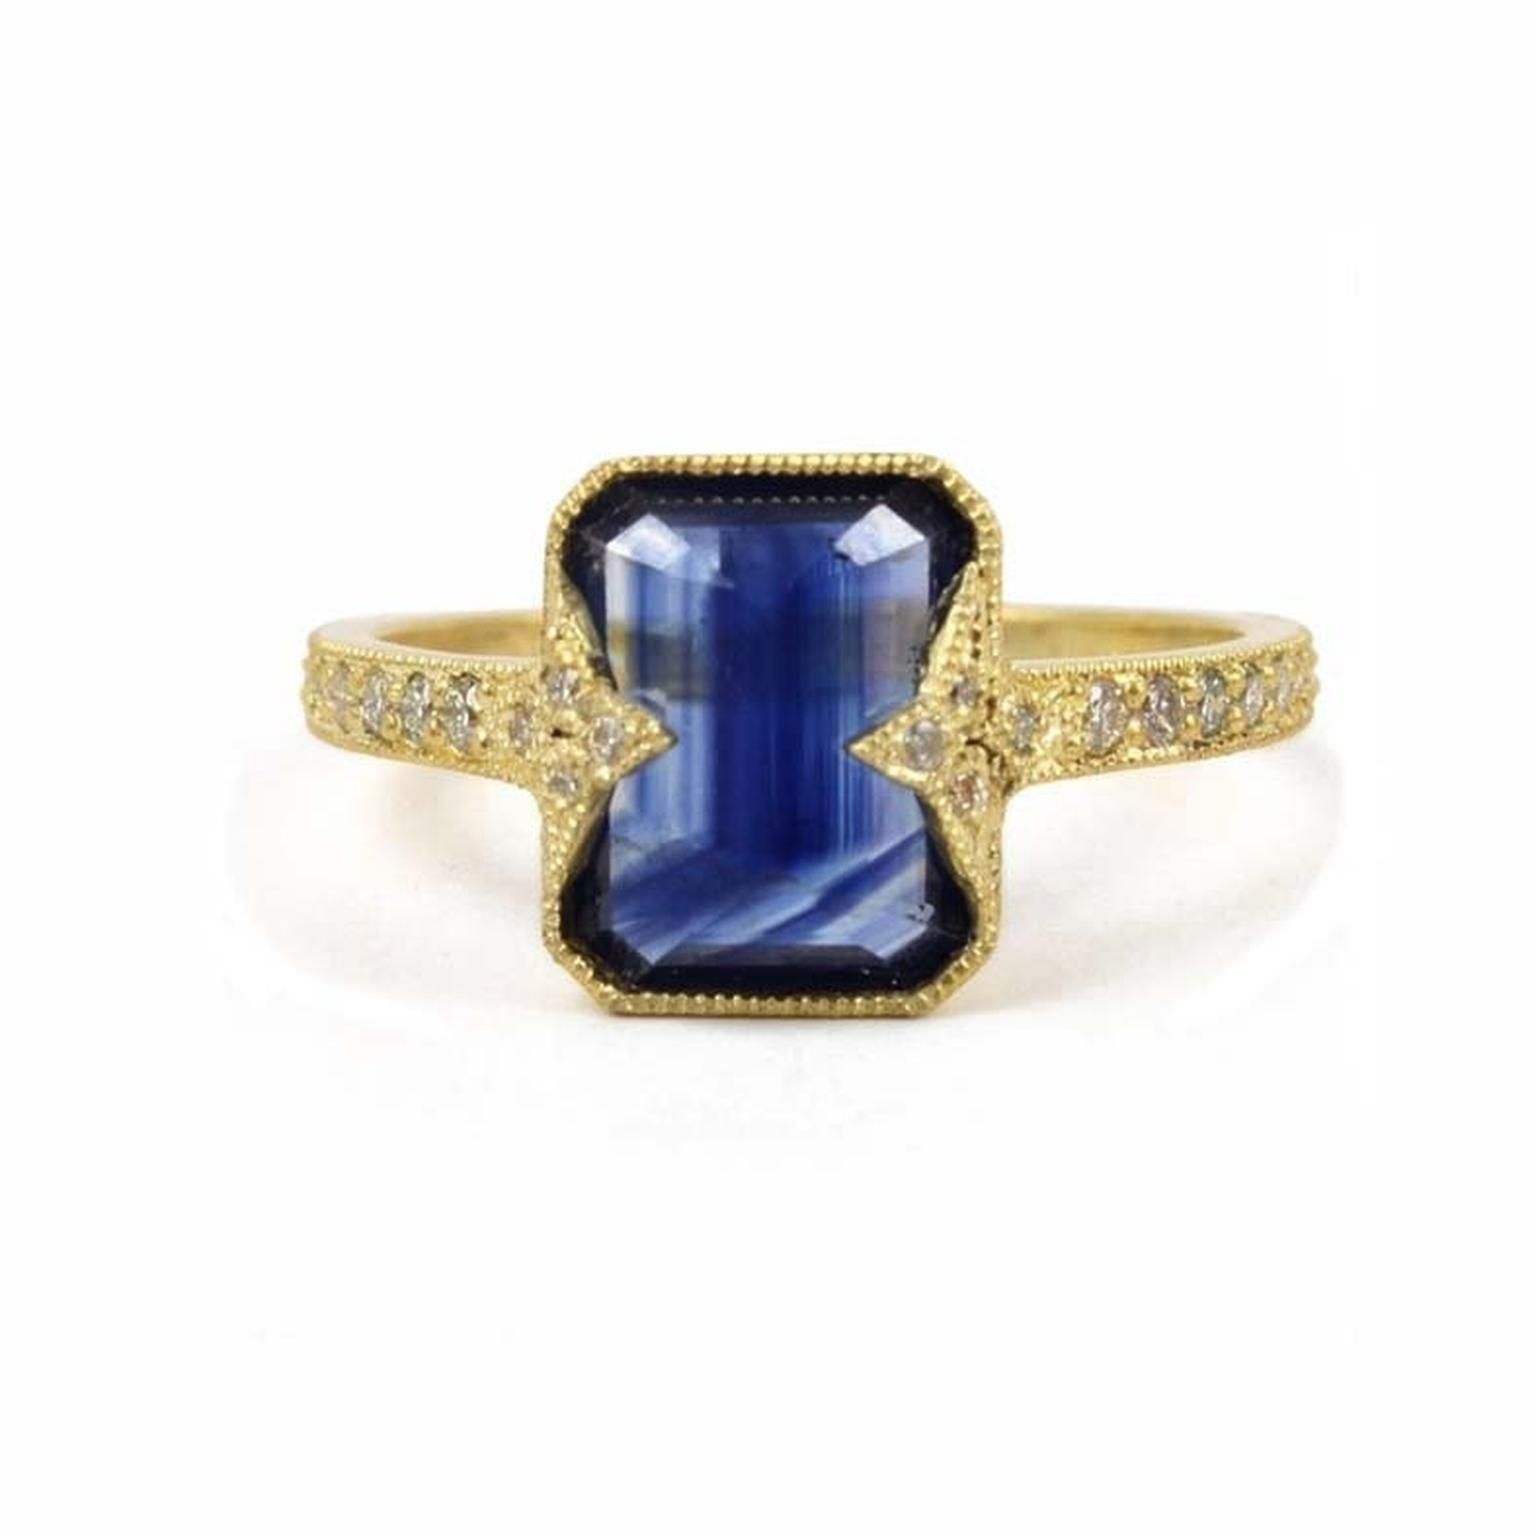 Sapphire engagement ring in yellow gold with diamonds by US-based jewellery designer ila & i, available from Tomfoolery in North London.